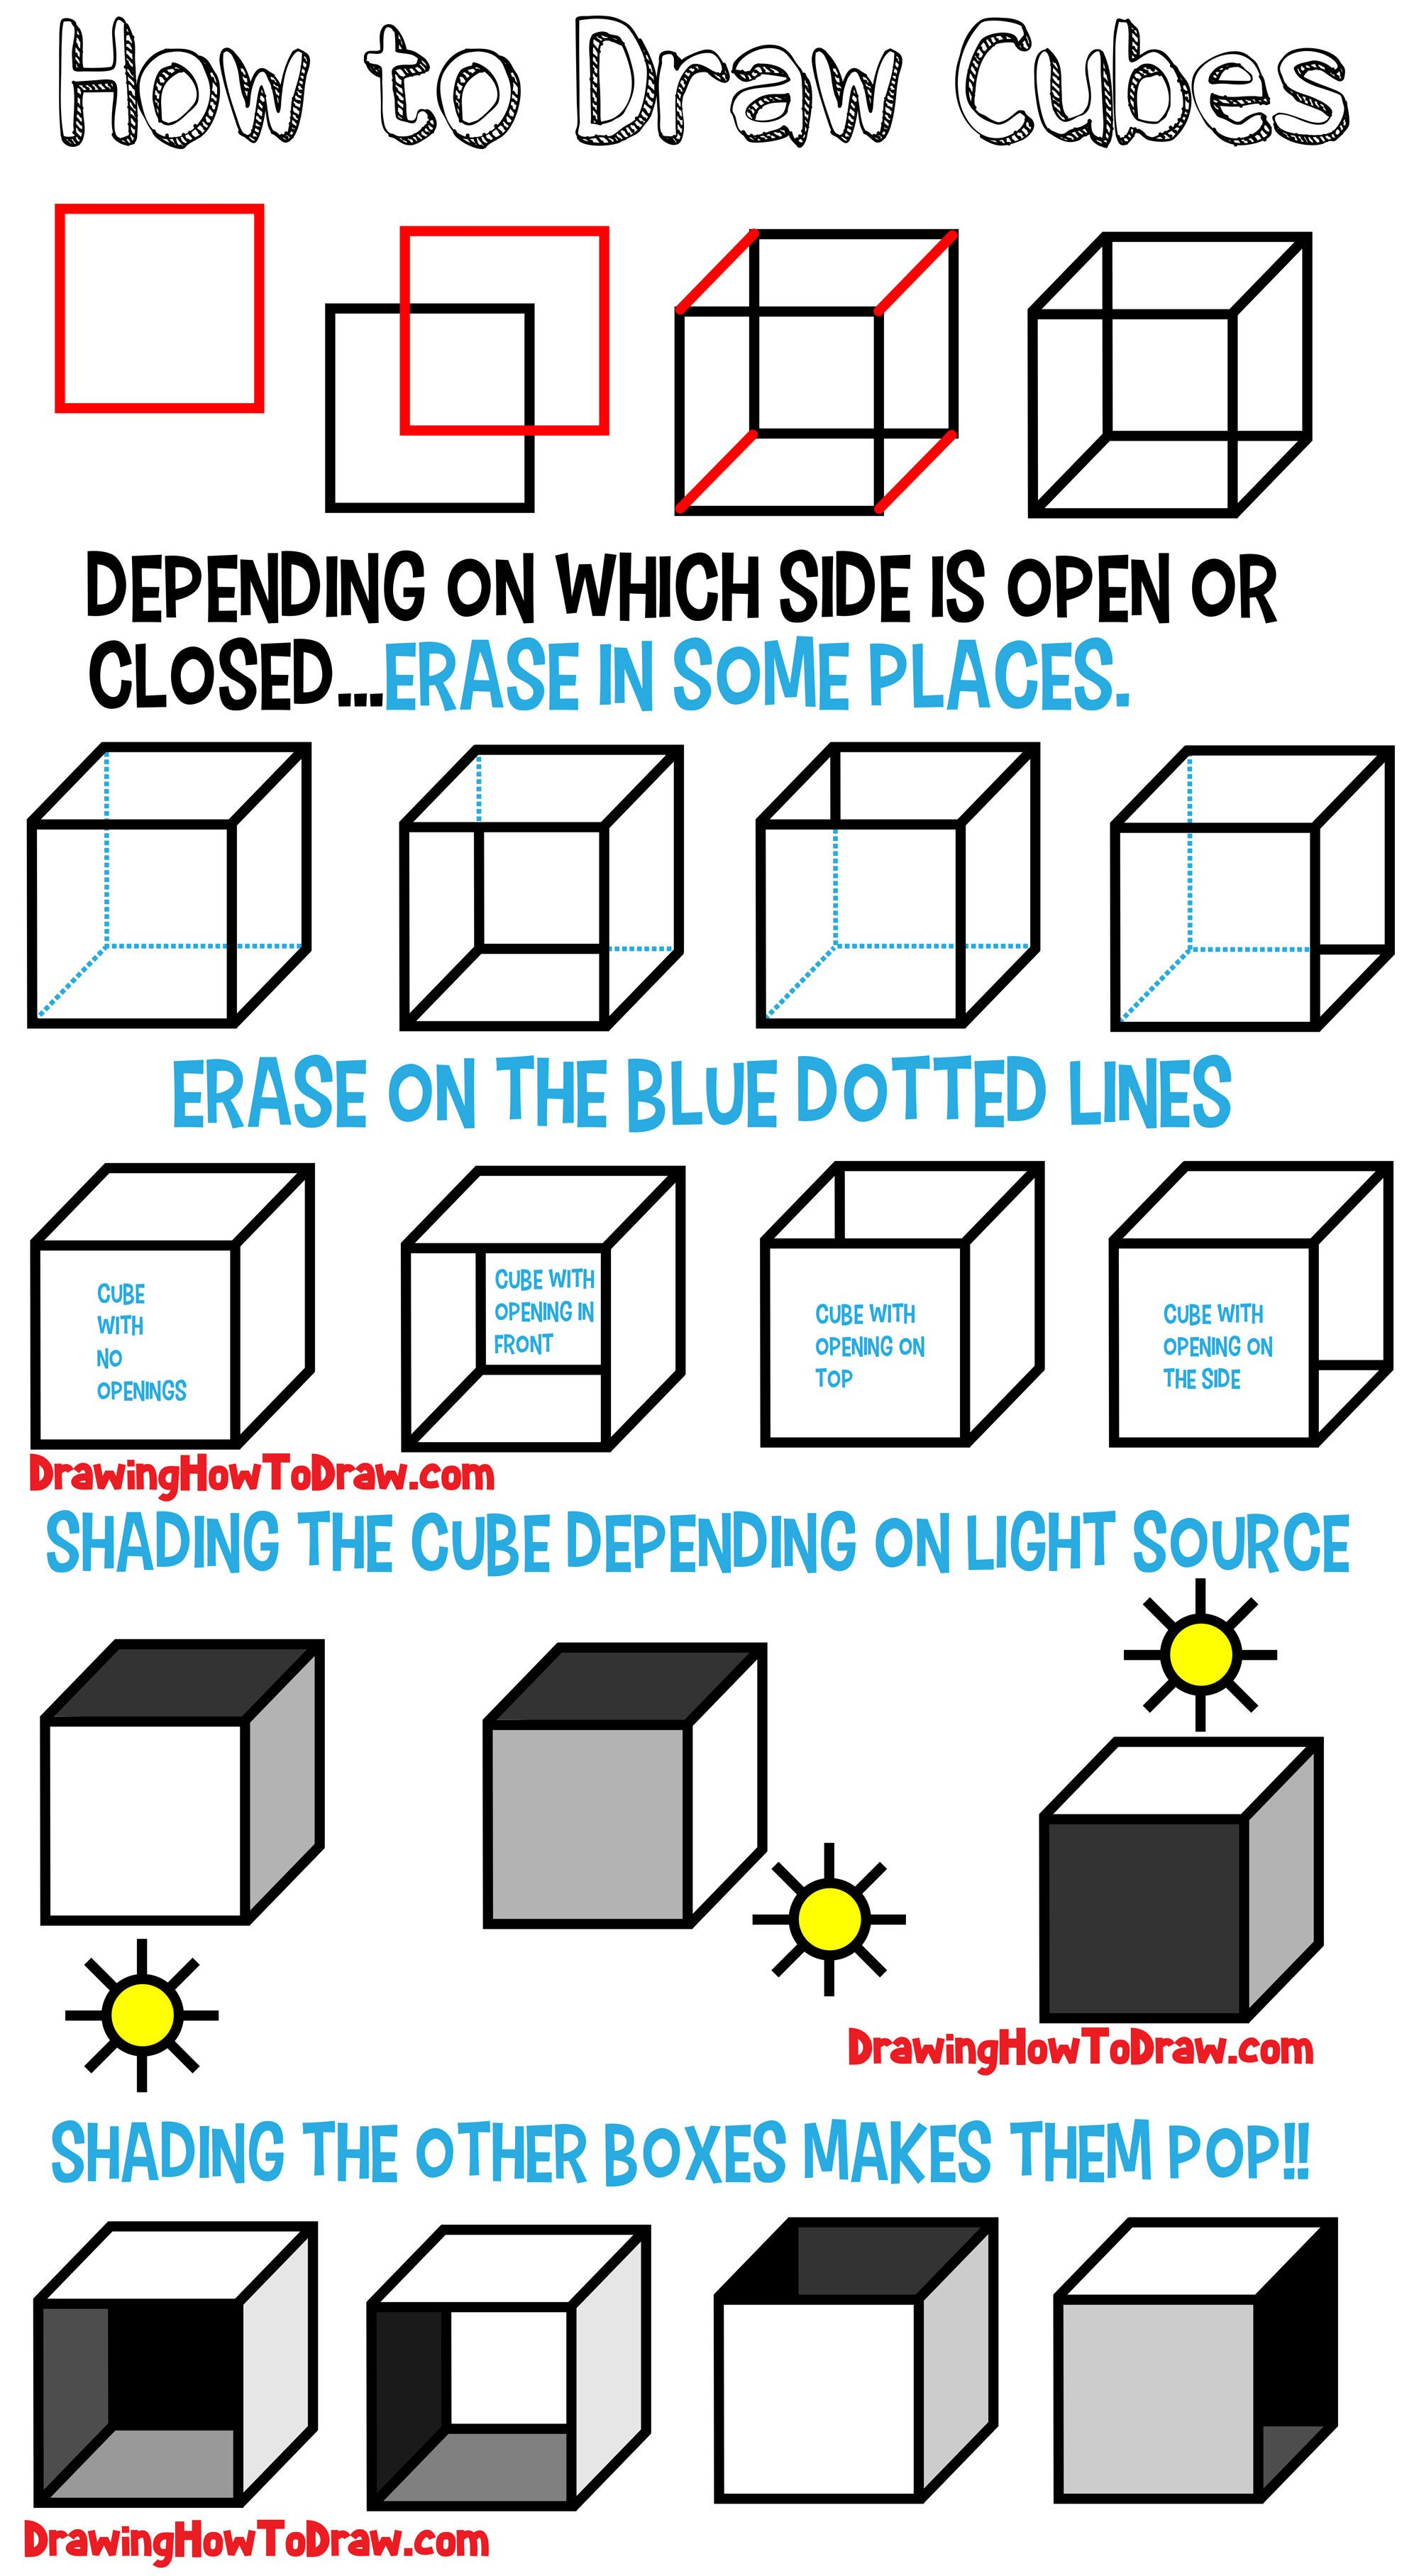 How To Draw A Cube Shading Drawing Cubes And Boxes From Different Angles How To Draw Step By Step Drawing Tutorials Shading Drawing Drawing For Beginners Perspective Drawing Lessons